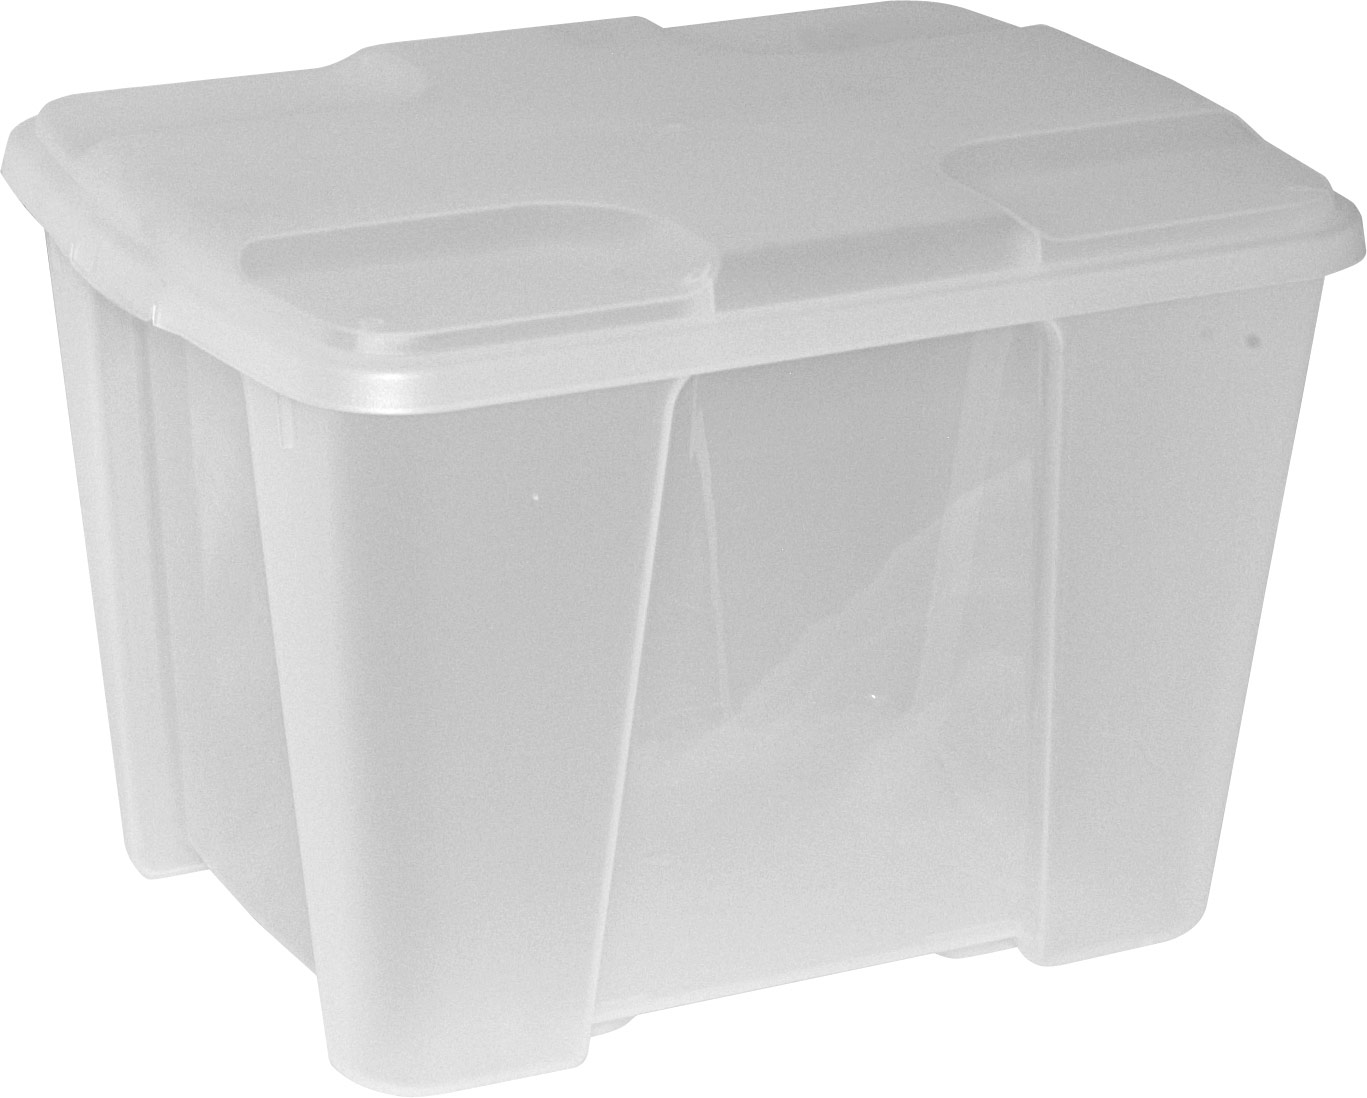 Transparent Storage Box